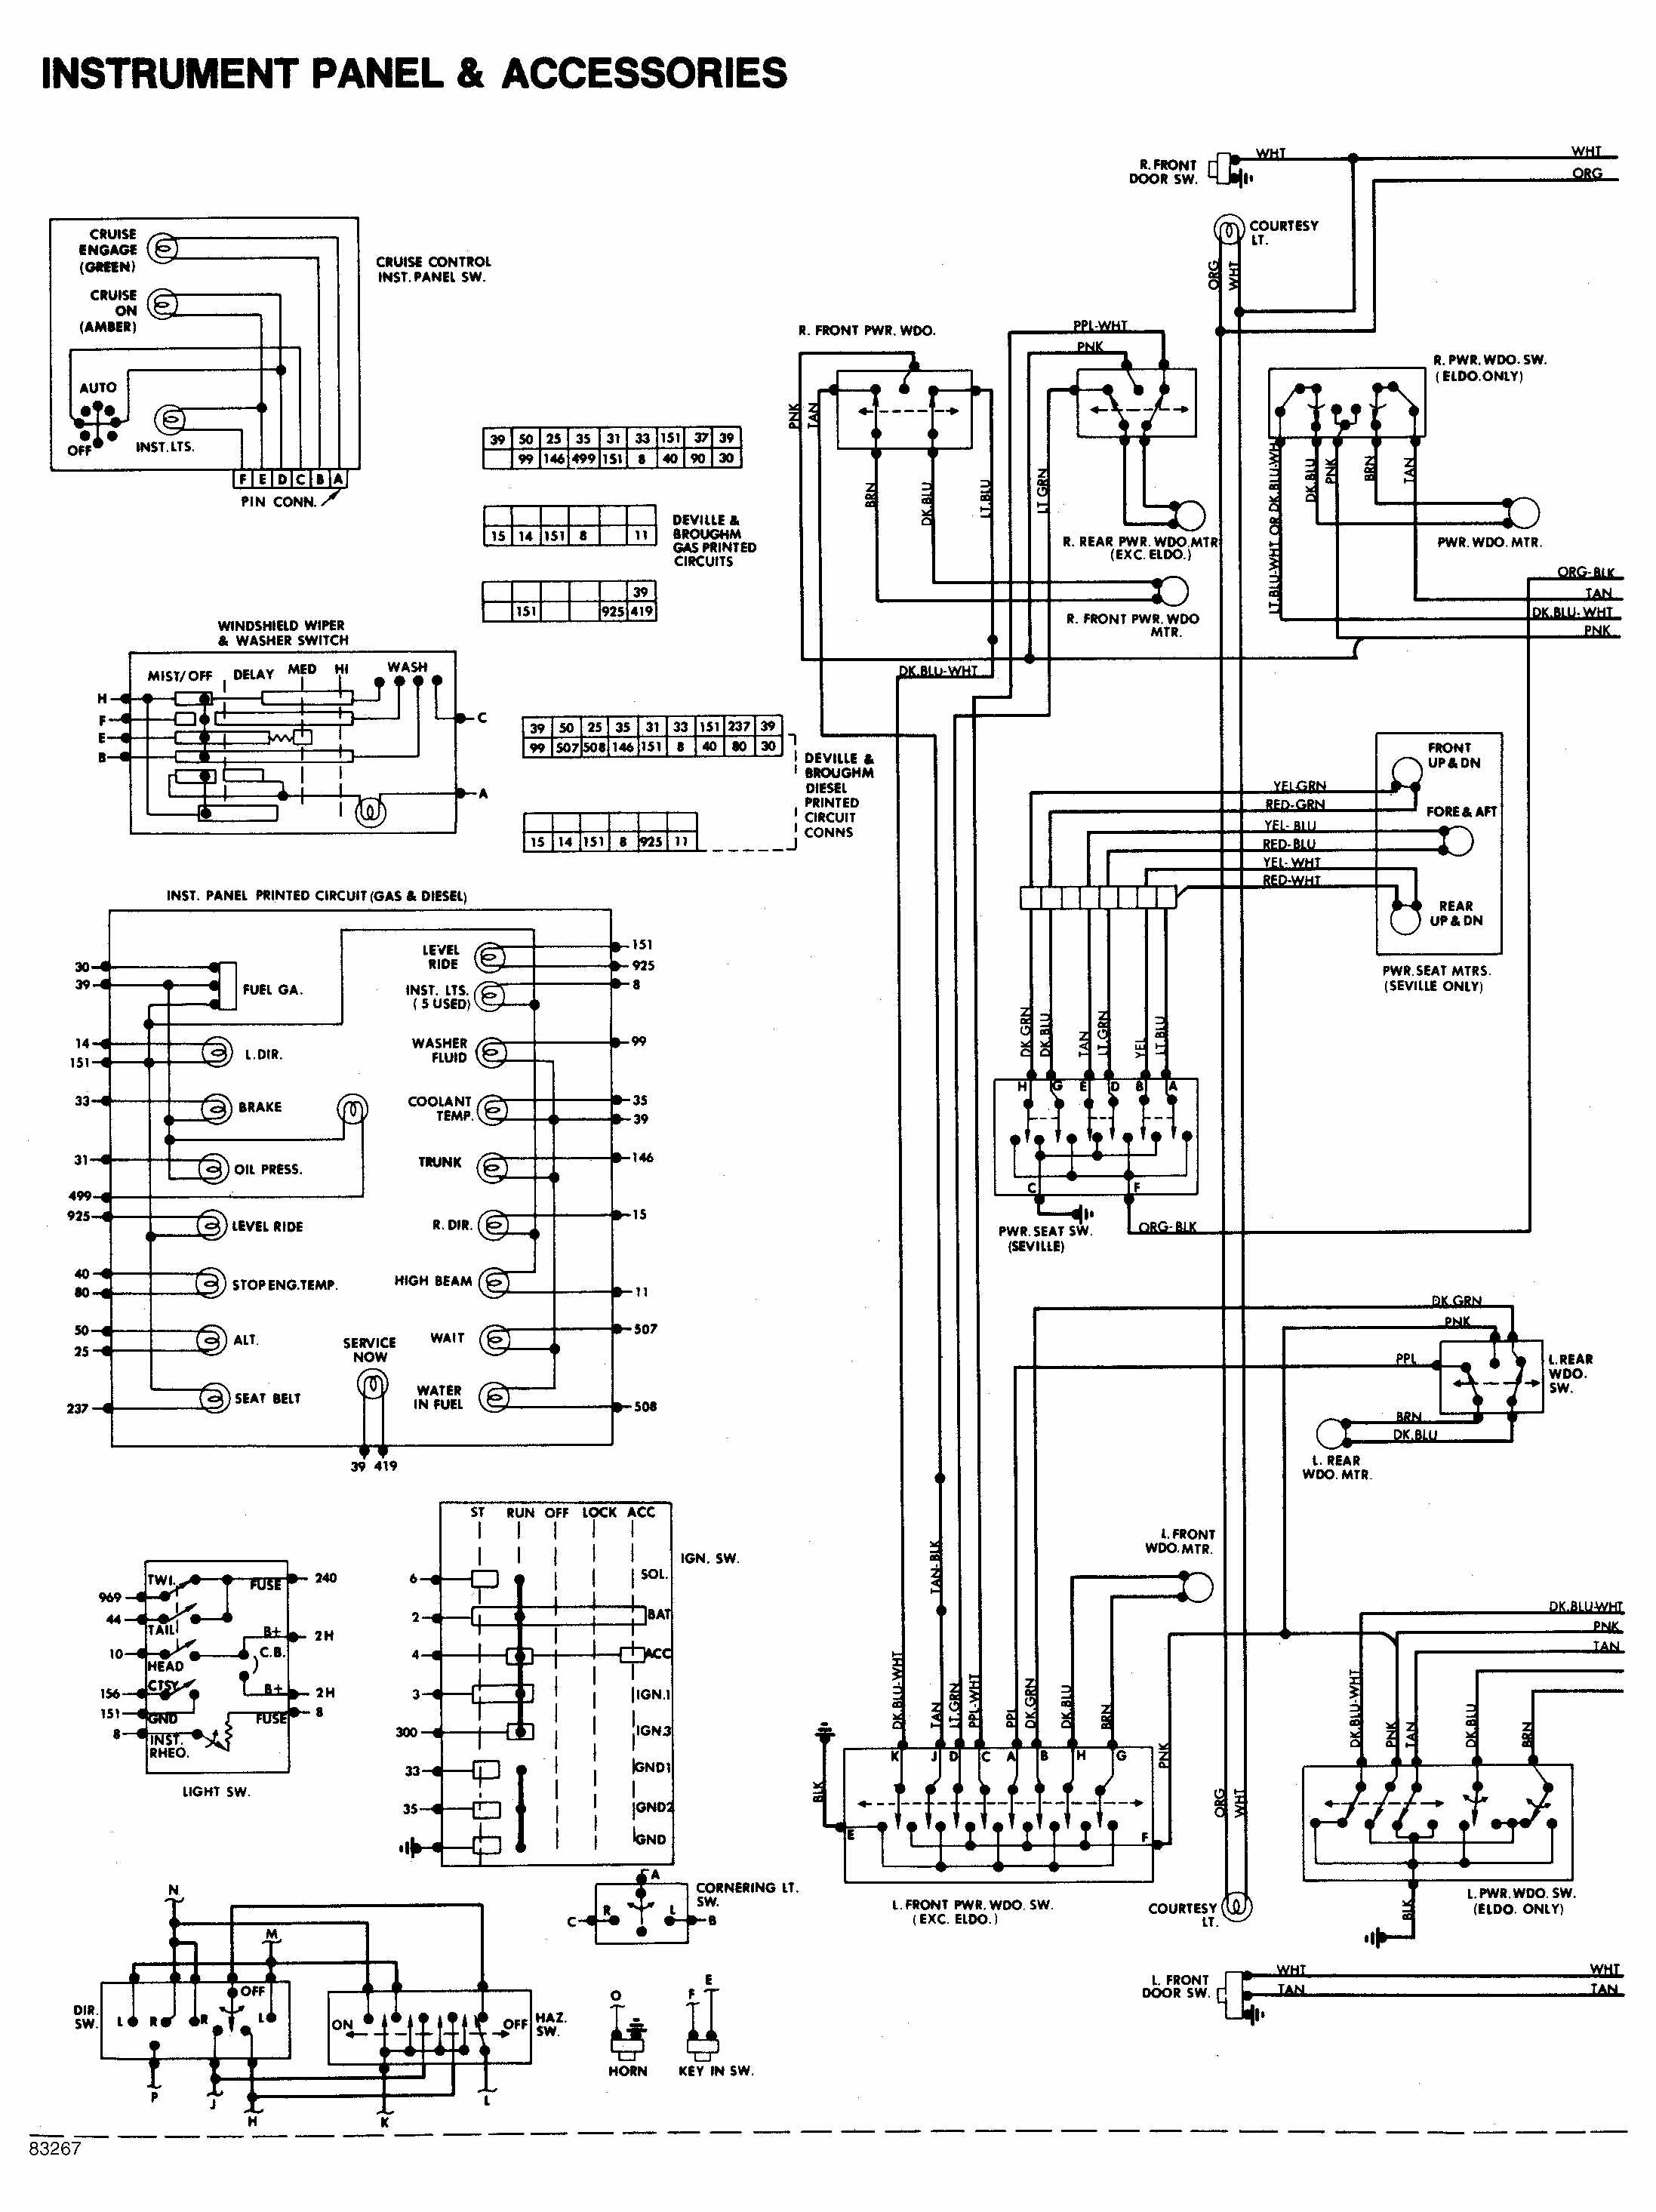 instrument panel and accessories wiring diagram of 1984 cadillac deville chevy diagrams  at fashall.co